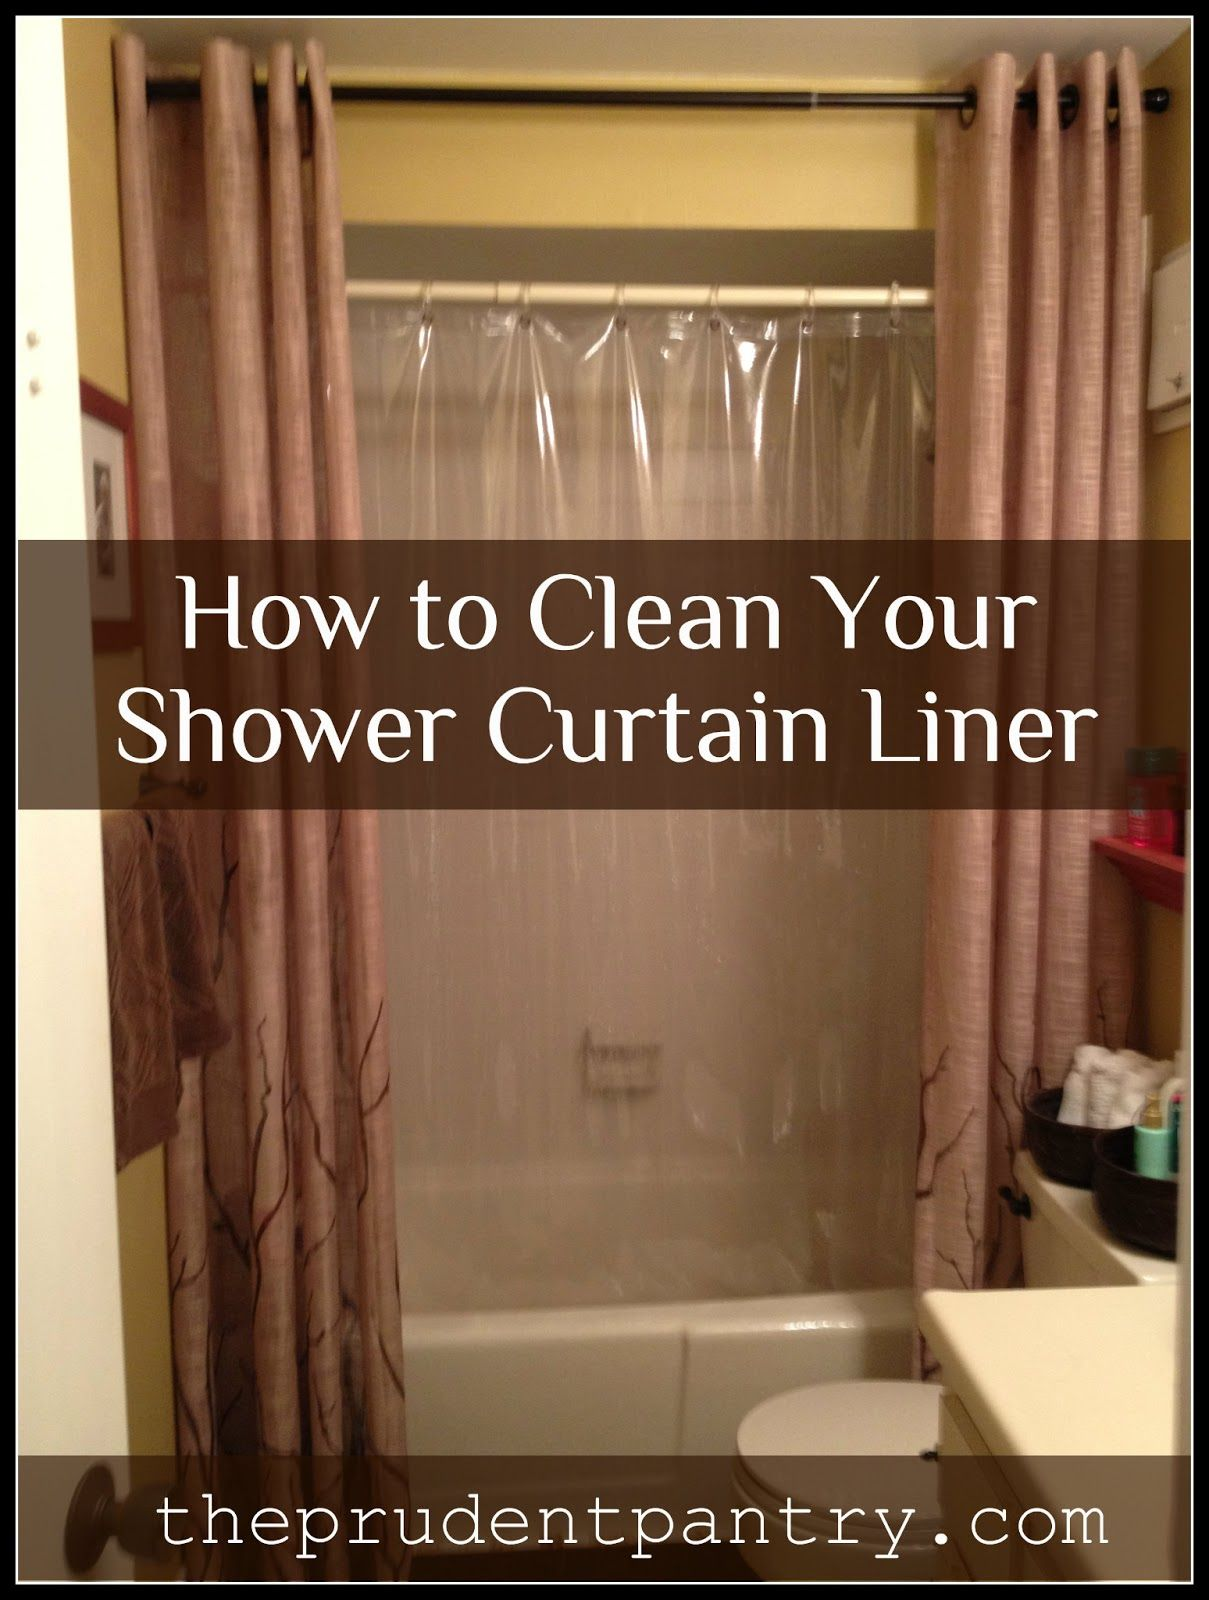 How To Clean Your Shower Curtain Liner Put In Washing Machine